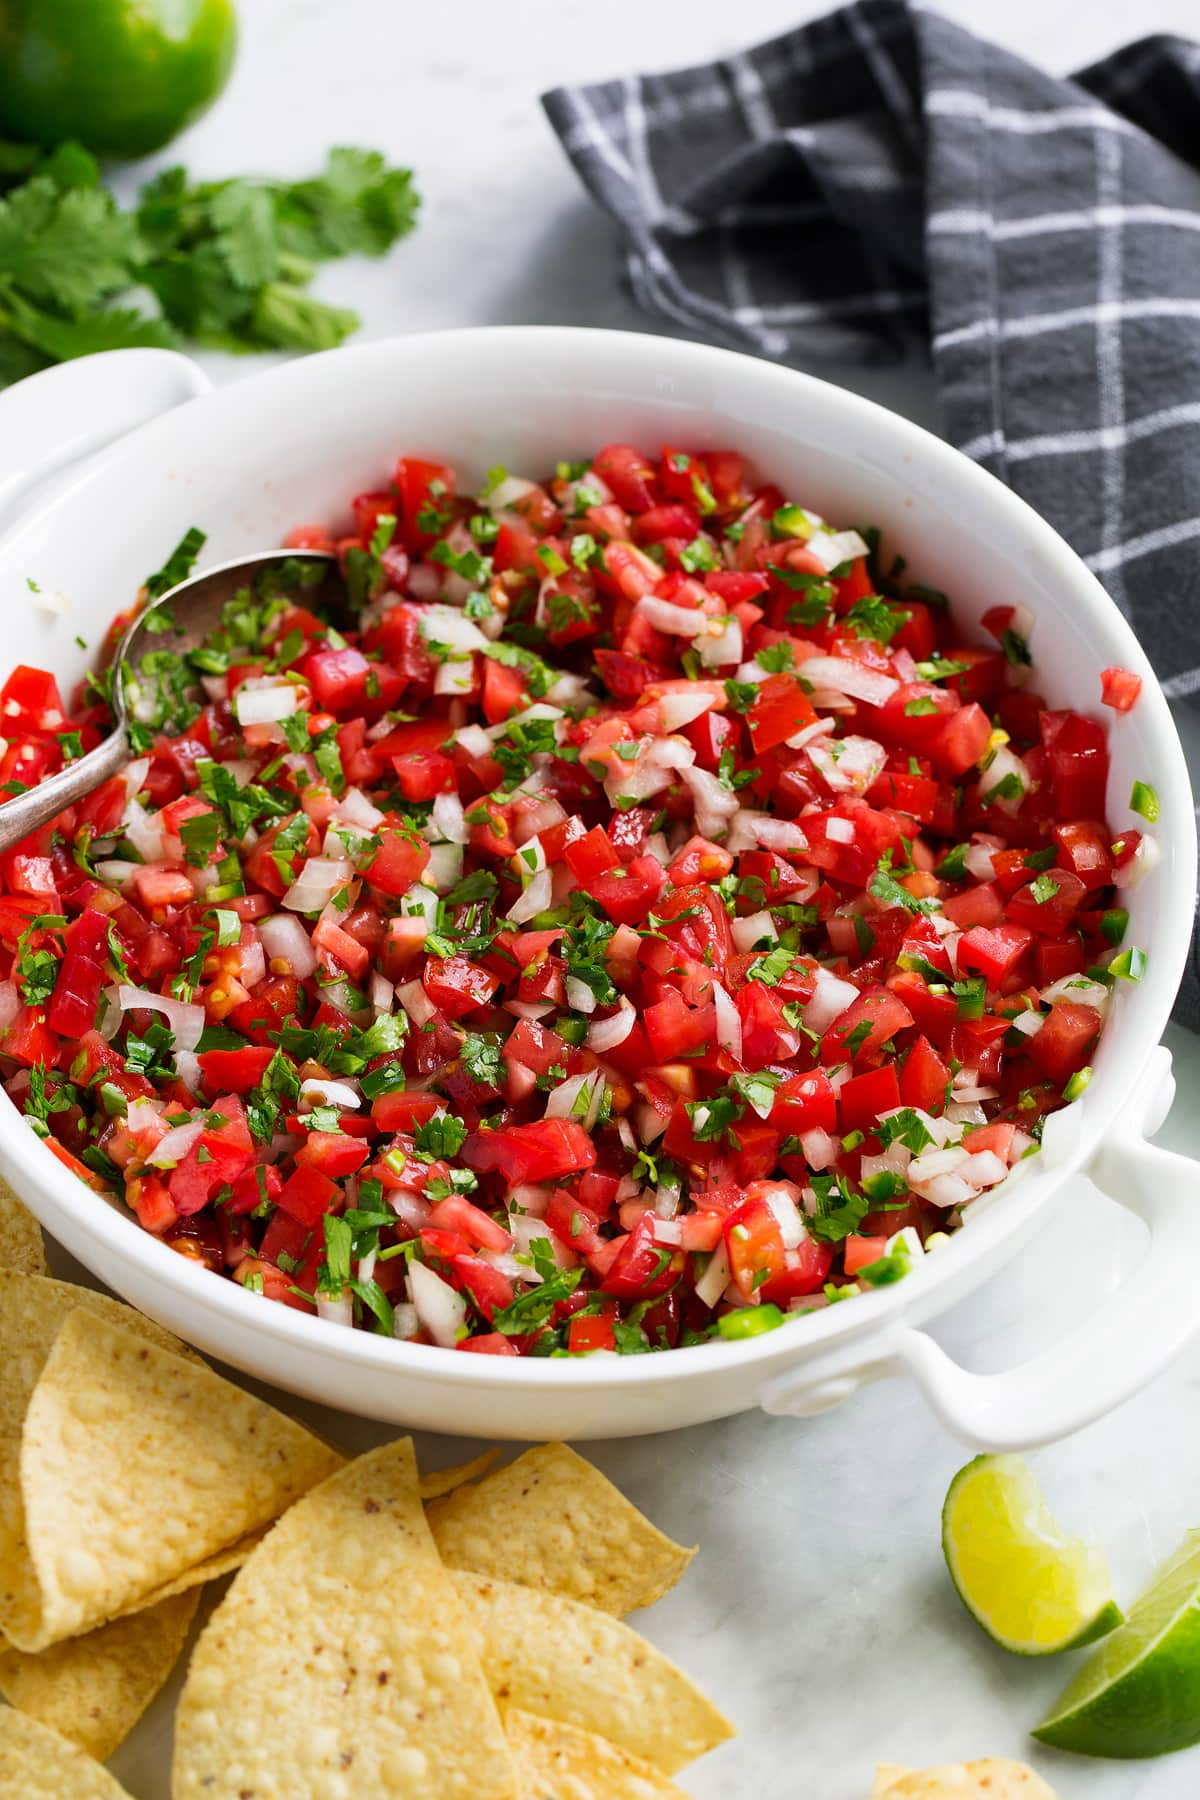 Bowl full of fresh pico de gallo.